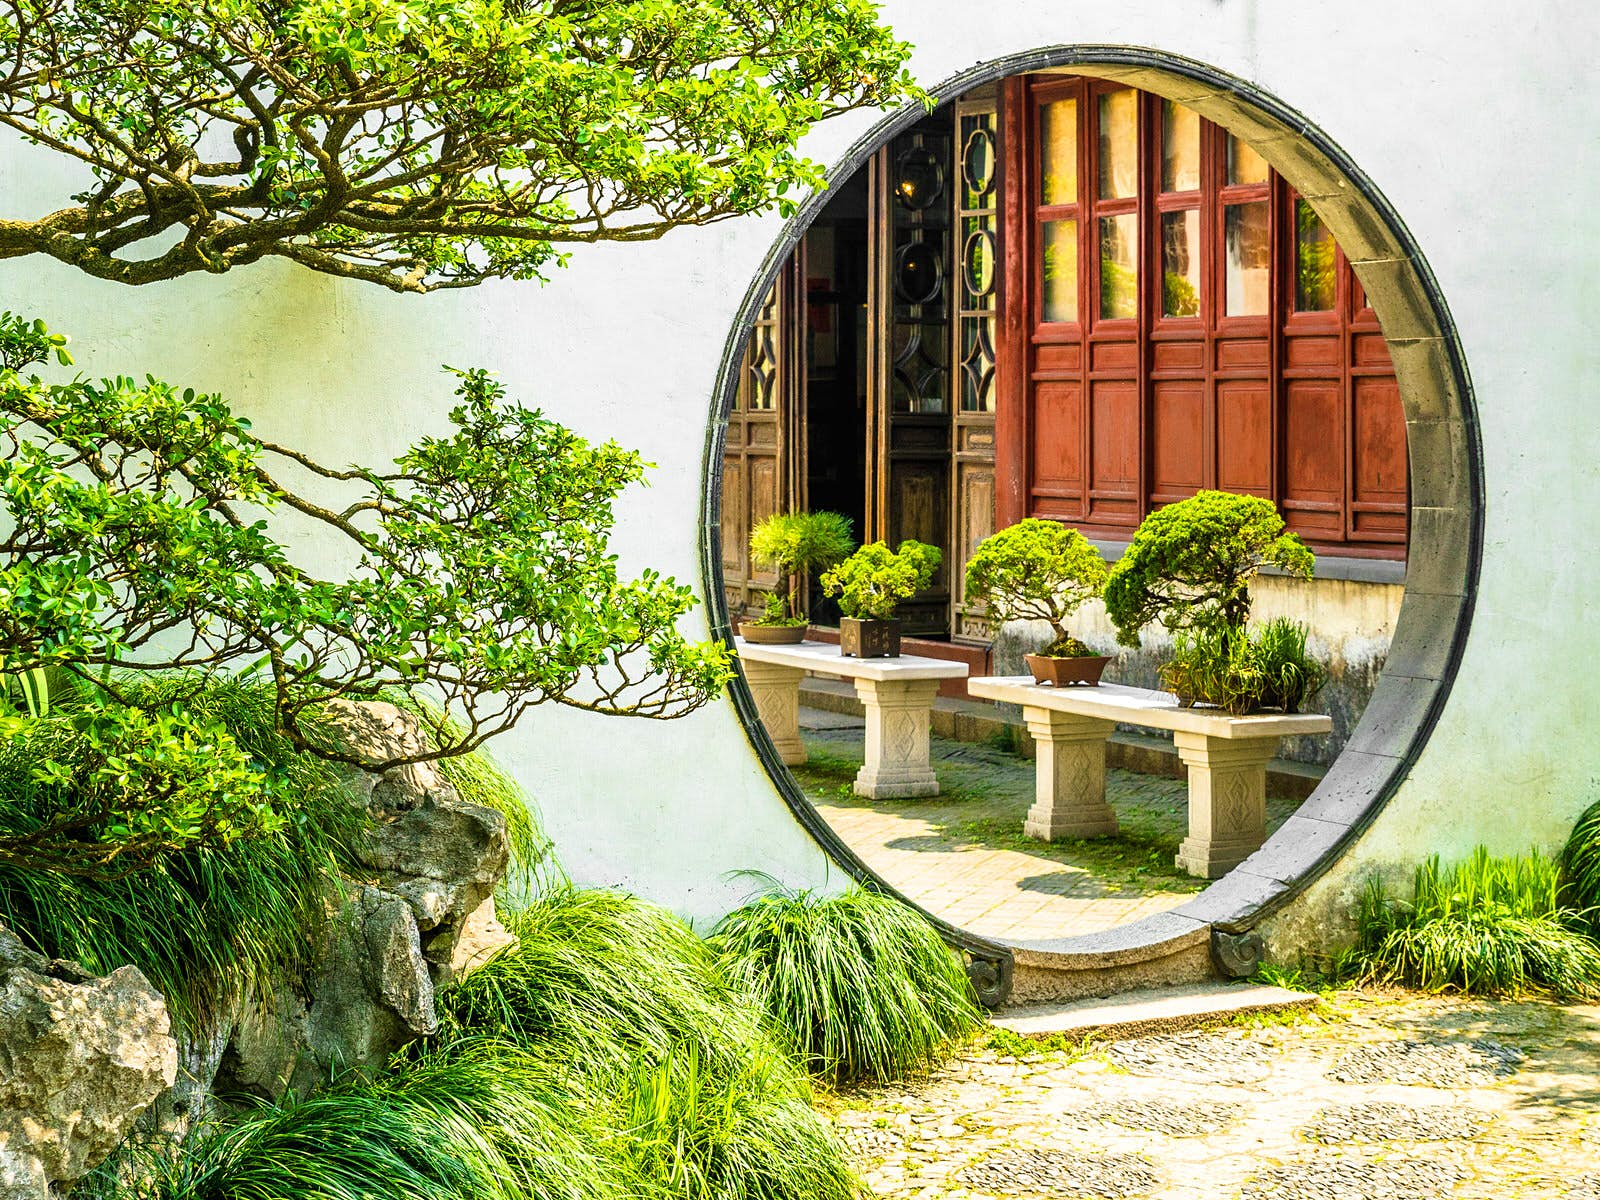 A round moon gate surrounded by white walls and green trees in Suzhou's the Garden of the Master of the Nets © Zharov Pavel / Shutterstock